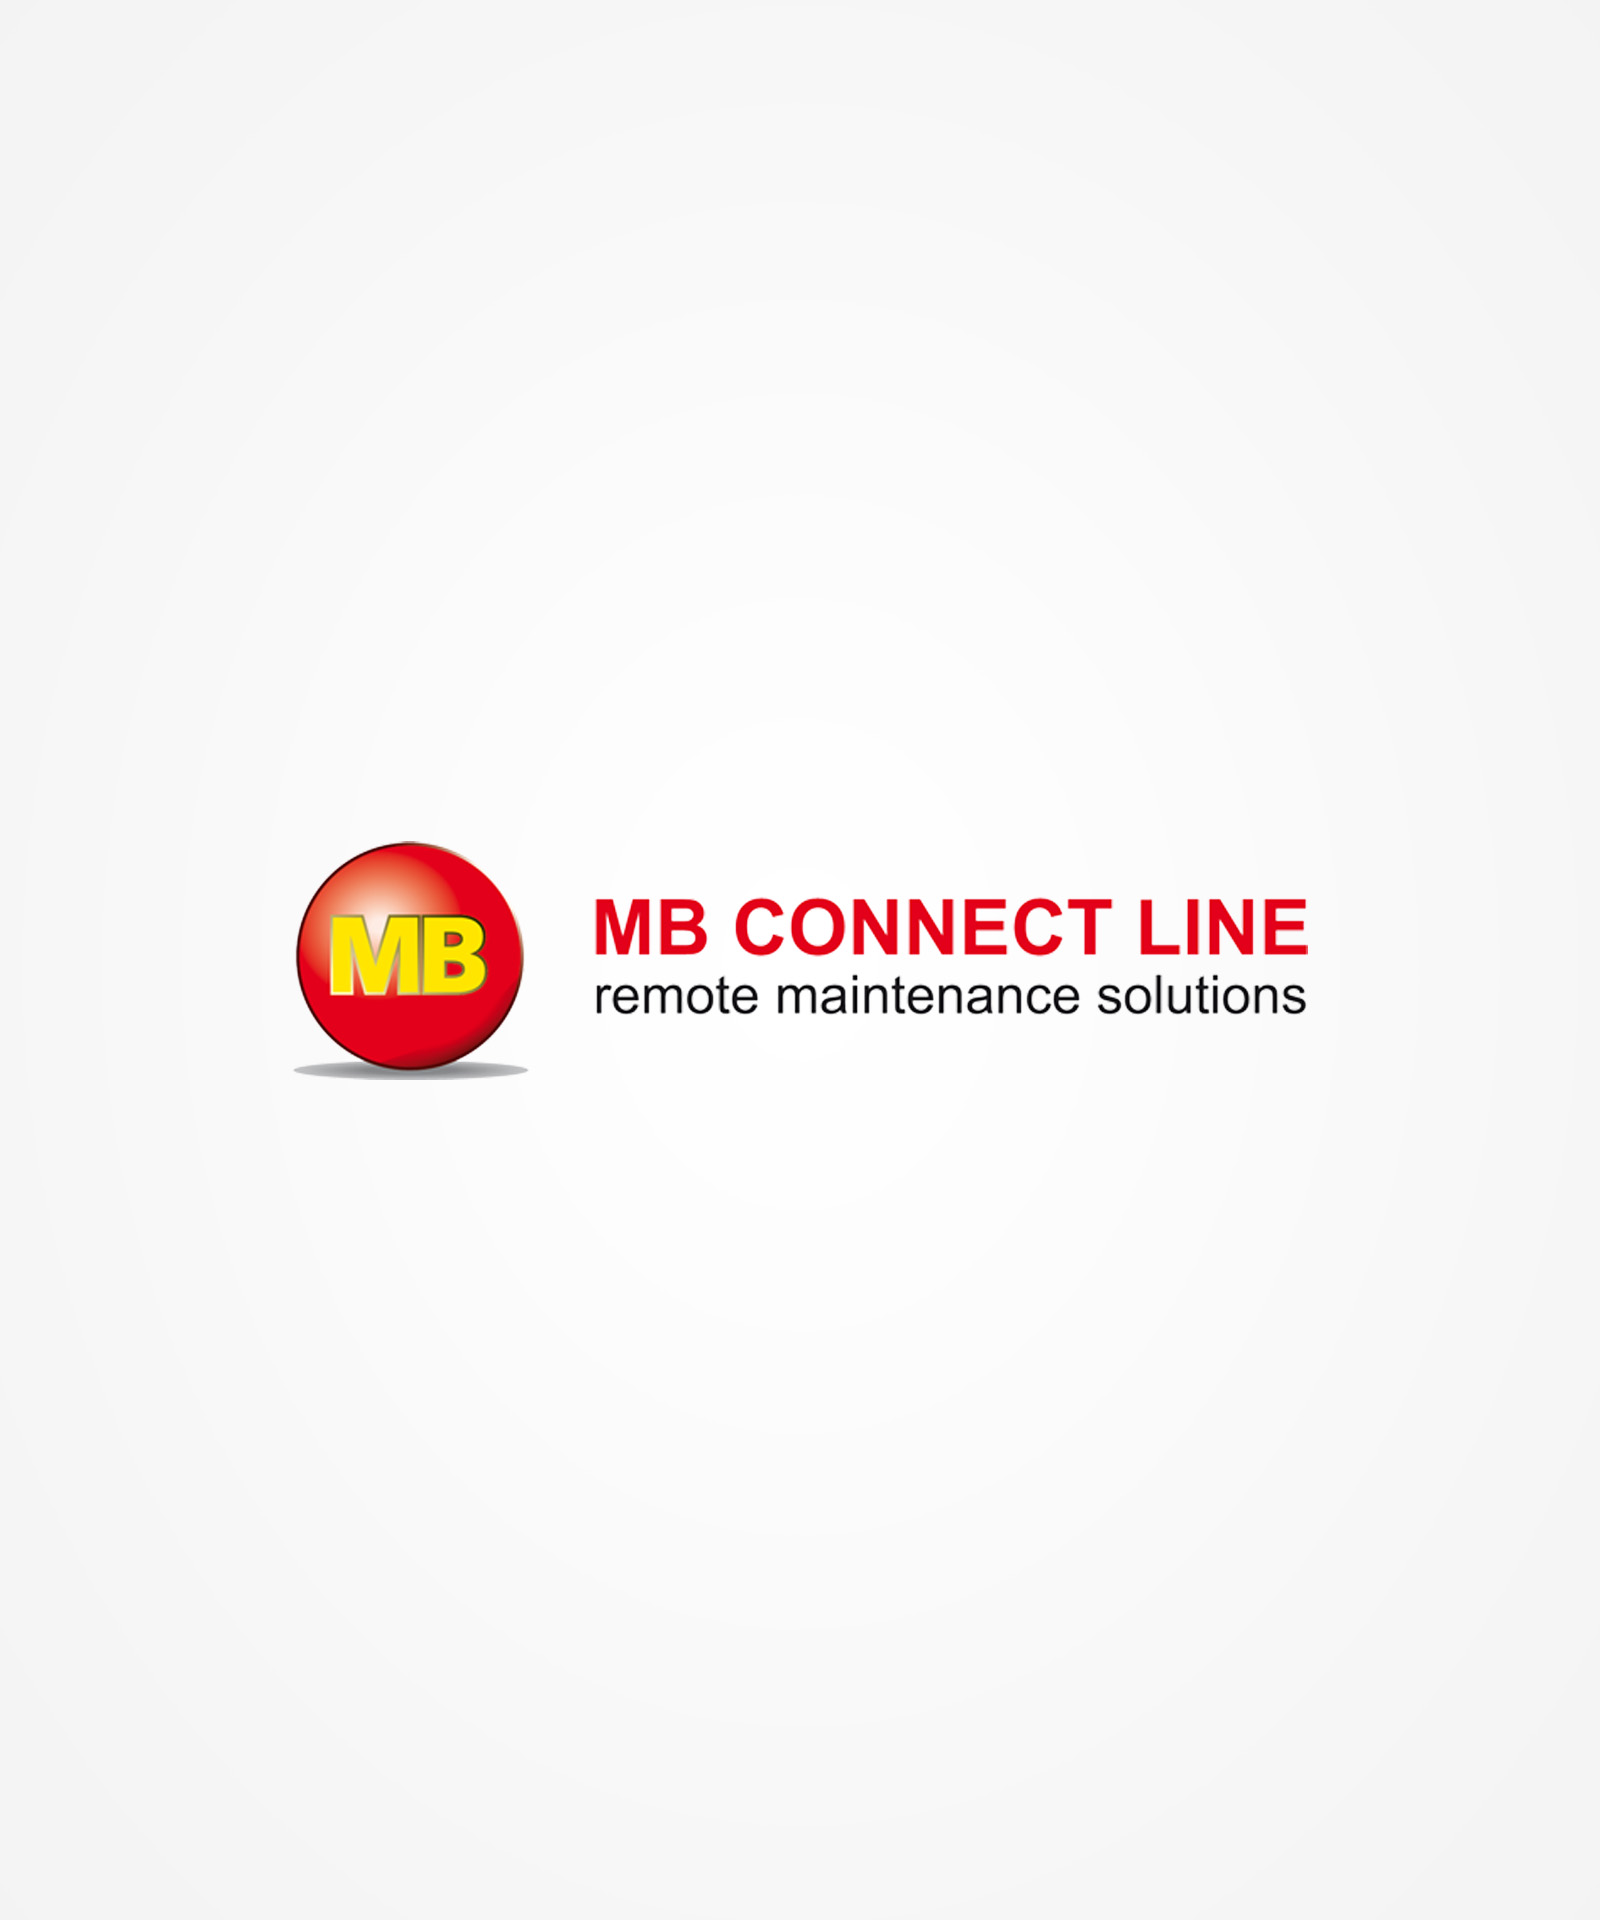 MB Connect Line